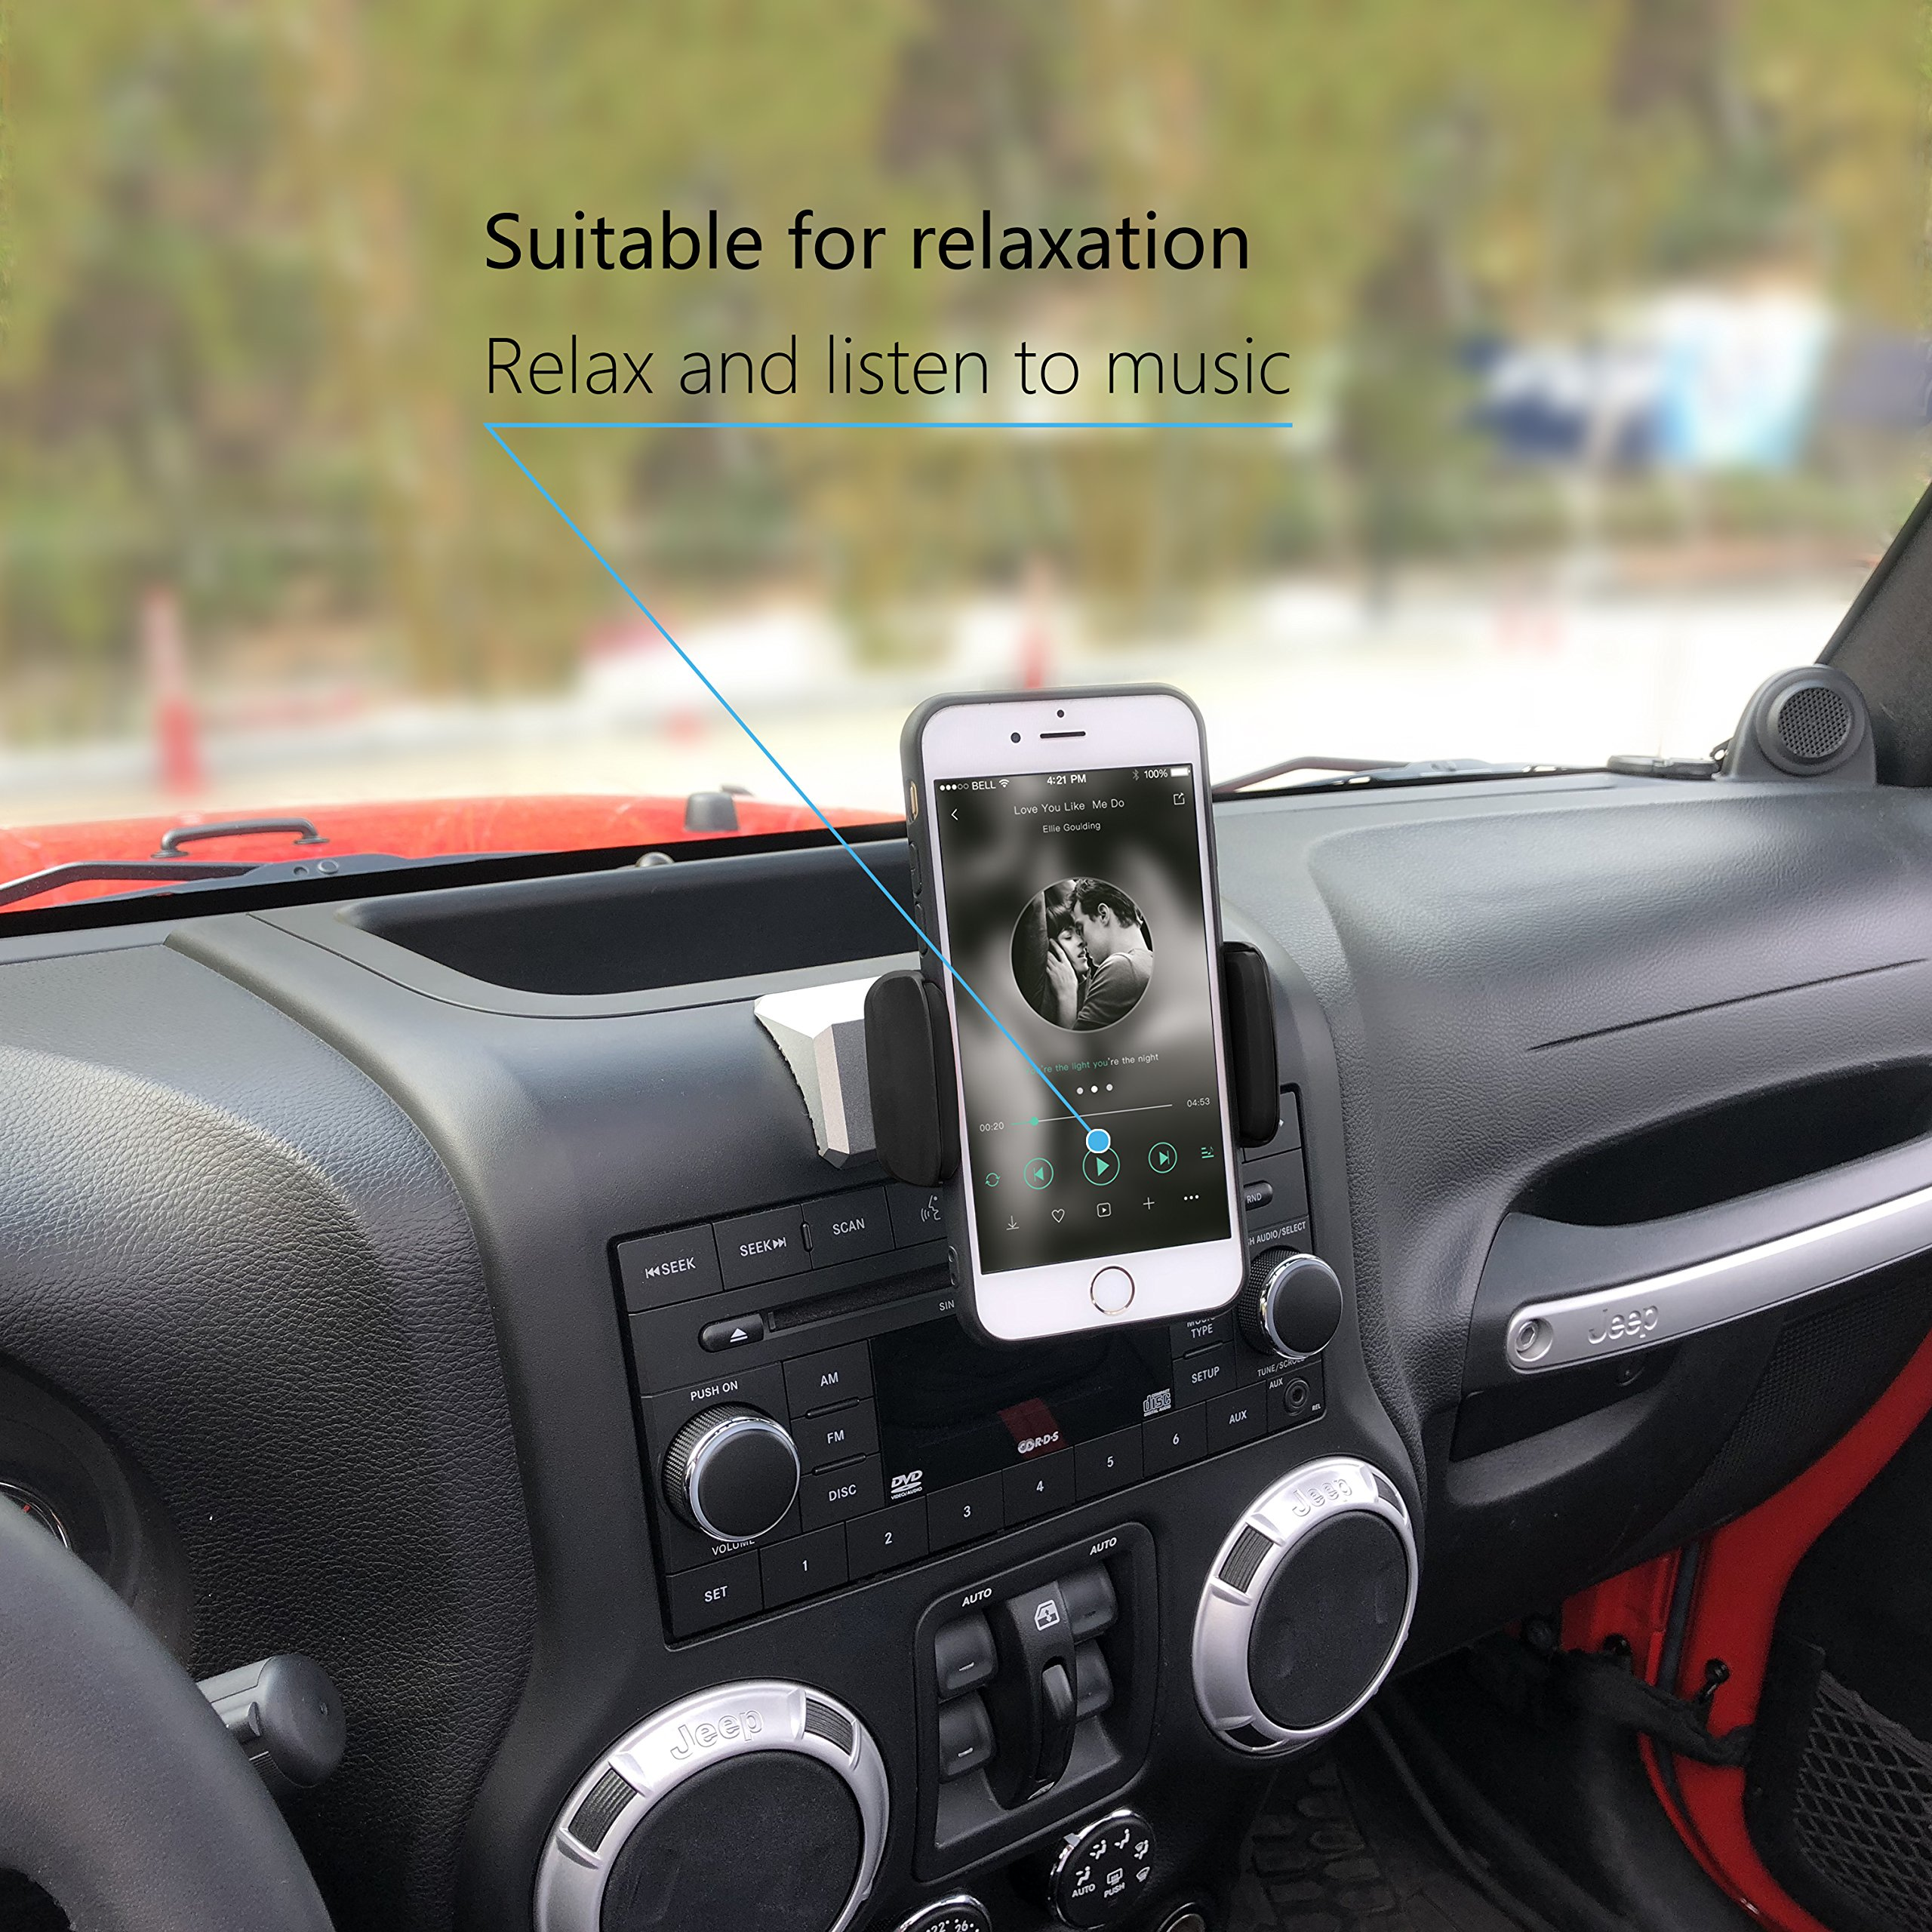 Sukemichi Universal Car Phone Mount for iPhone 7 Plus,8 Plus,X,7,6S,6,Samsung Galaxy Note S6 S7,Google Nexus,Huawei,Car Phone ipad Holder for Jeep 2012-2017 JK Wrangler,Silvery